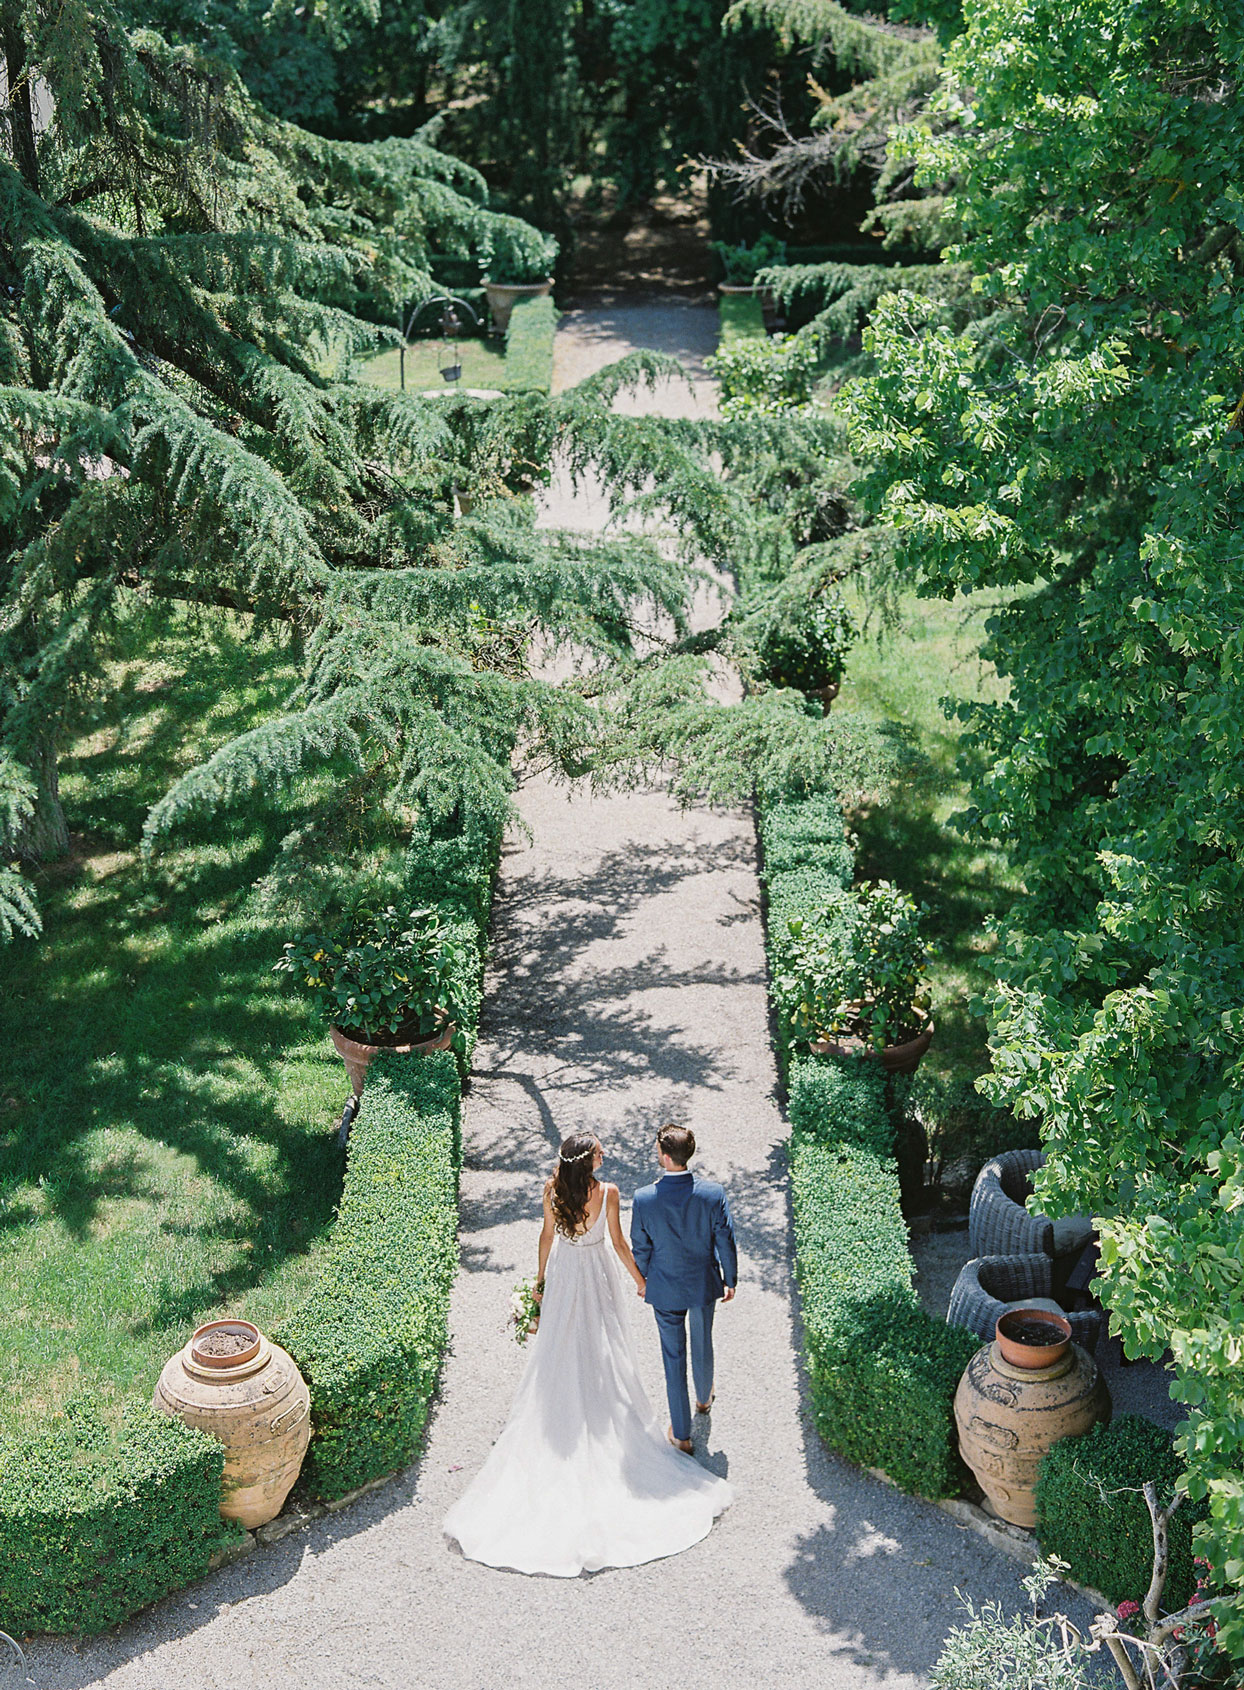 aeiral view of wedding couple outdoor garden pathway